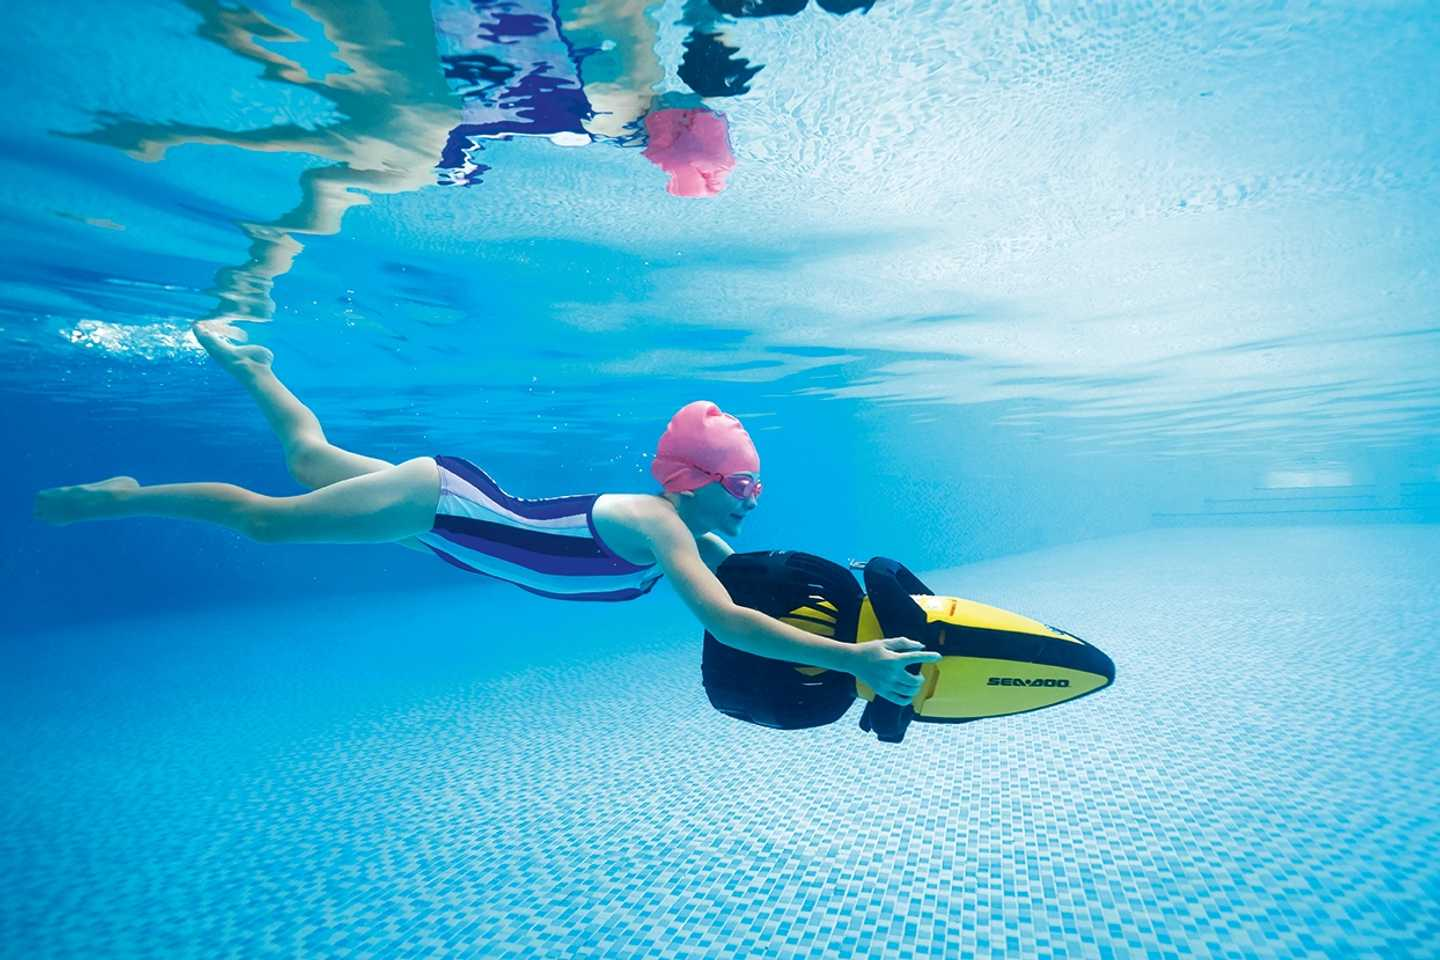 A guest underwater on an Aqua Jet